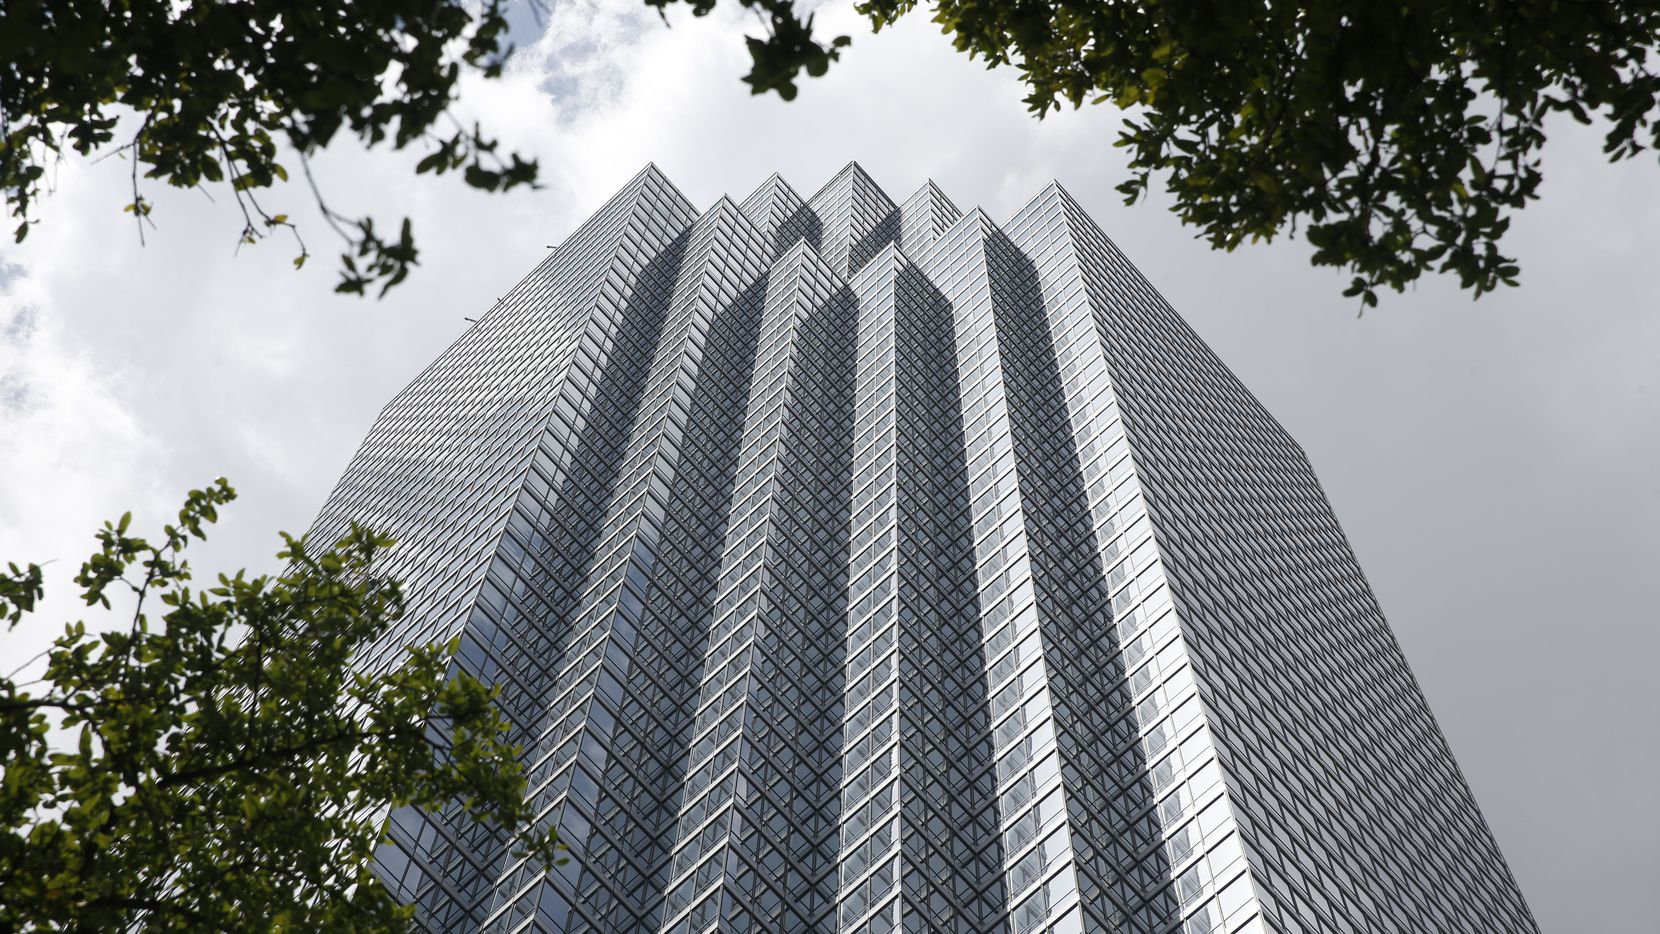 The Bank of America Plaza opened in 1985 and is still Dallas' tallest skyscraper.